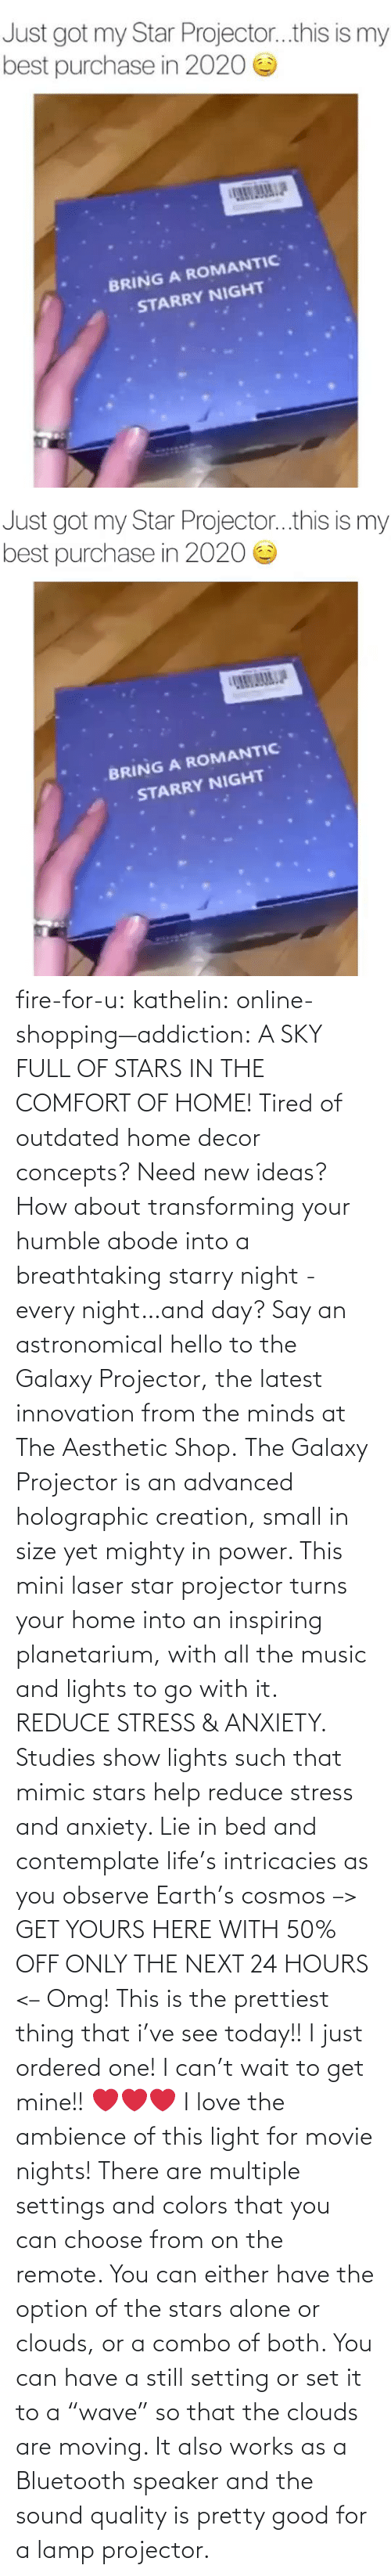 "Minds: fire-for-u:  kathelin: online-shopping—addiction:  A SKY FULL OF STARS IN THE COMFORT OF HOME! Tired of outdated home decor concepts? Need new ideas? How about transforming your humble abode into a breathtaking starry night - every night…and day? Say an astronomical hello to the Galaxy Projector, the latest innovation from the minds at The Aesthetic Shop. The Galaxy Projector is an advanced holographic creation, small in size yet mighty in power. This mini laser star projector turns your home into an inspiring planetarium, with all the music and lights to go with it. REDUCE STRESS & ANXIETY. Studies show lights such that mimic stars help reduce stress and anxiety. Lie in bed and contemplate life's intricacies as you observe Earth's cosmos  –> GET YOURS HERE WITH 50% OFF ONLY THE NEXT 24 HOURS <–   Omg! This is the prettiest thing that i've see today!! I just ordered one! I can't wait to get mine!! ❤️️❤️️❤️️  I love the ambience of this light for movie nights! There are multiple settings and colors that you can choose from on the remote. You can either have the option of the stars alone or clouds, or a combo of both. You can have a still setting or set it to a ""wave"" so that the clouds are moving. It also works as a Bluetooth speaker and the sound quality is pretty good for a lamp projector."